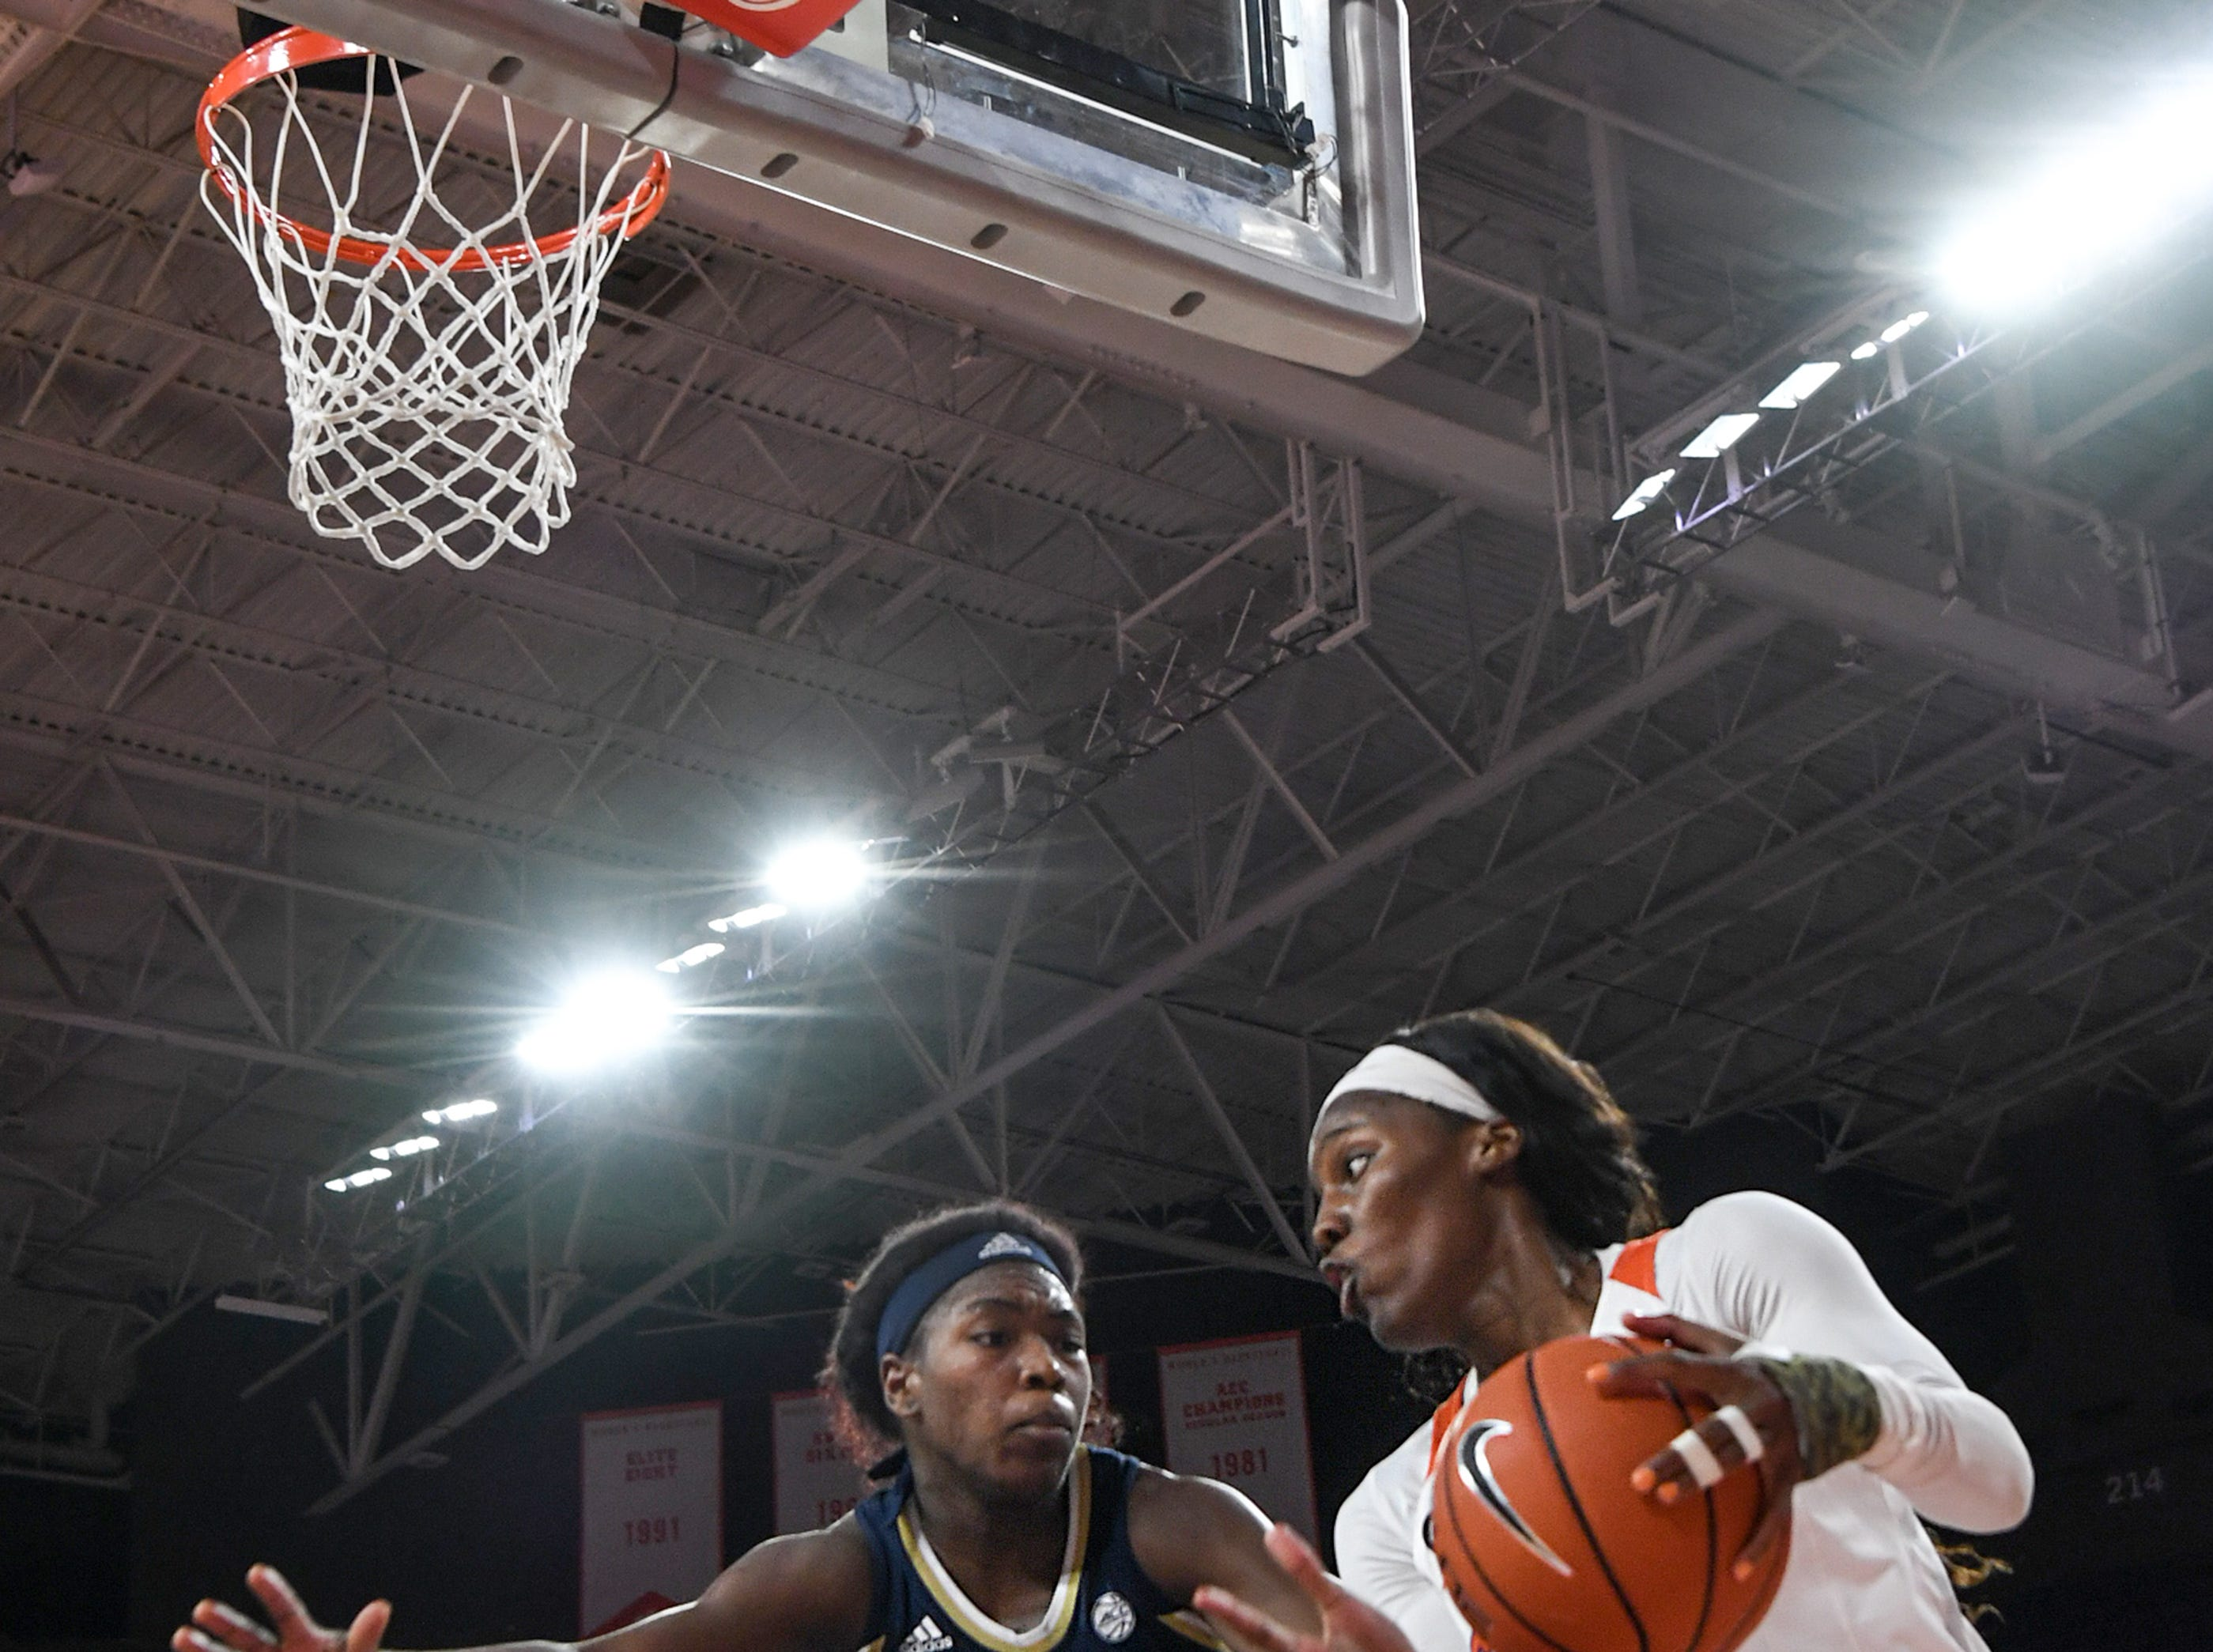 Clemson guard Aliyah Collier(12) dribbles near Georgia Tech guard Chanin Scott(24) during the fourth quarter at Littlejohn Coliseum in Clemson Thursday, January 17, 2019.